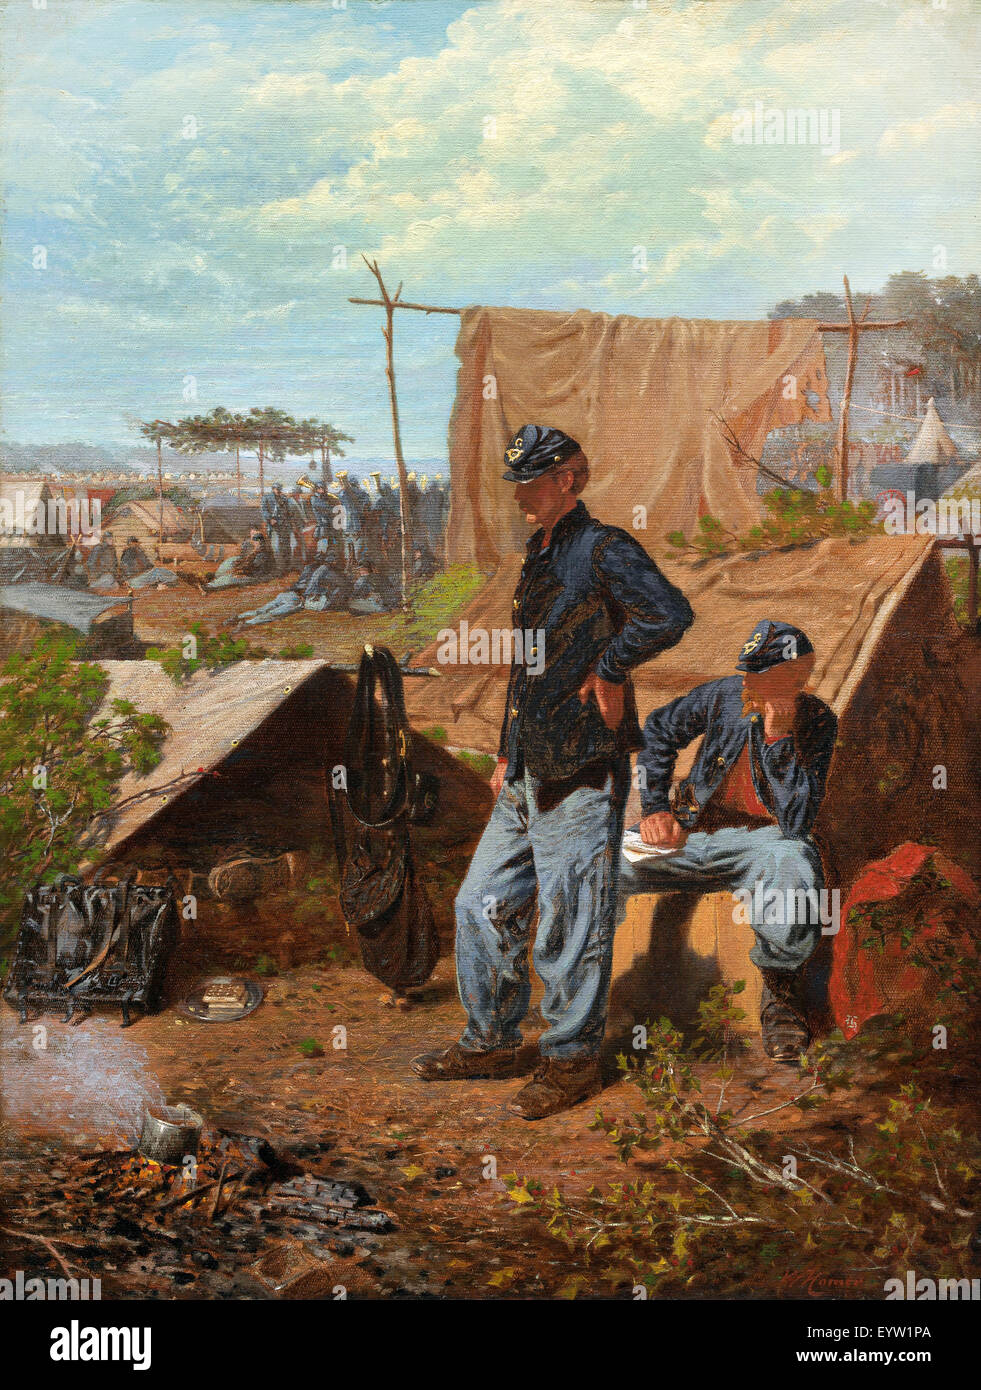 Winslow Homer, Home, Sweet Home. Circa 1863. Oil on canvas. National Gallery of Art, Washington, D.C., USA. - Stock Image